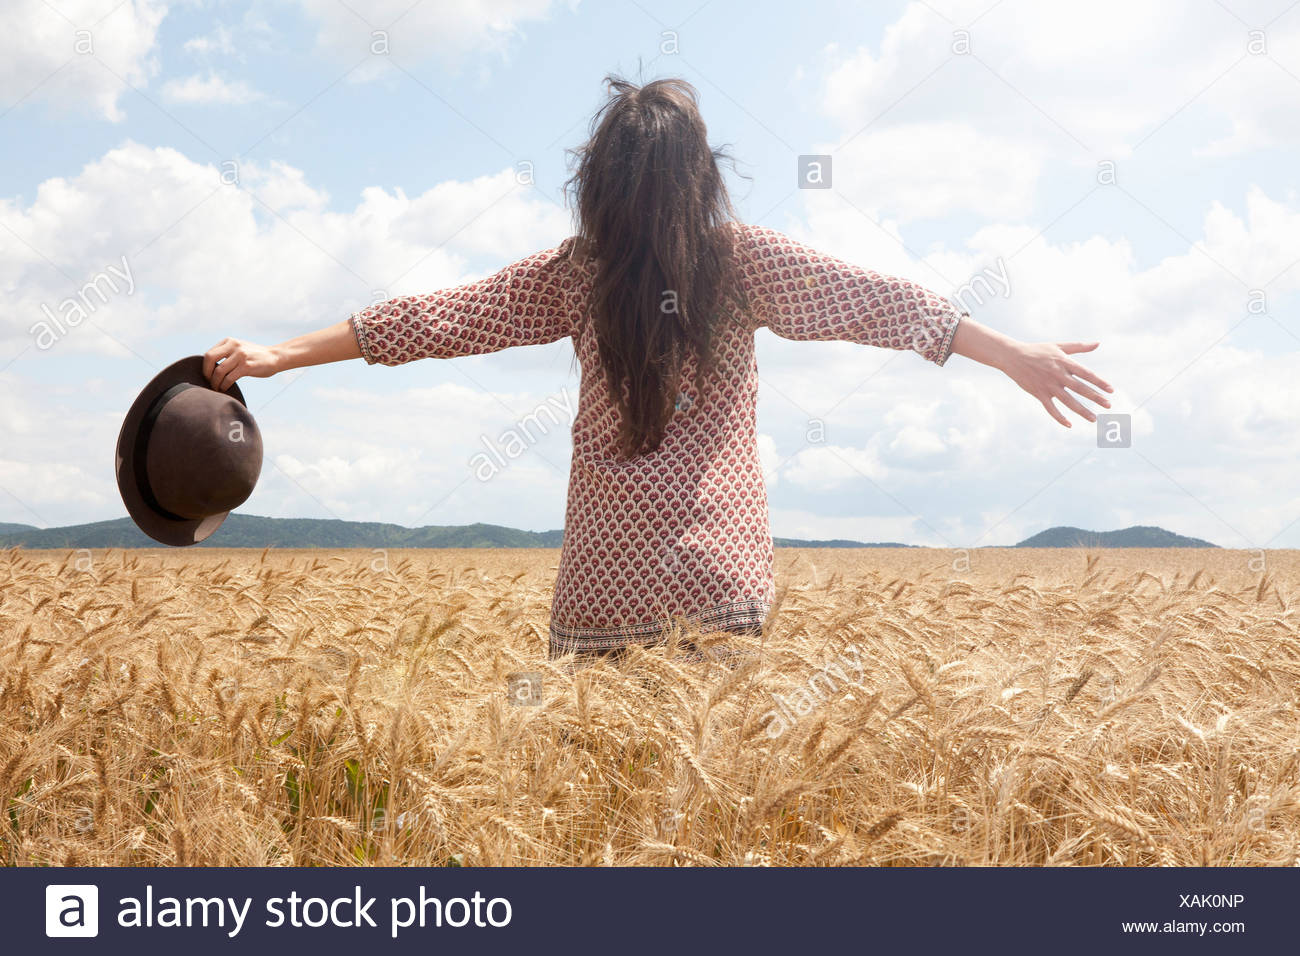 Mid adult woman standing in wheat field with arms out wide - Stock Image